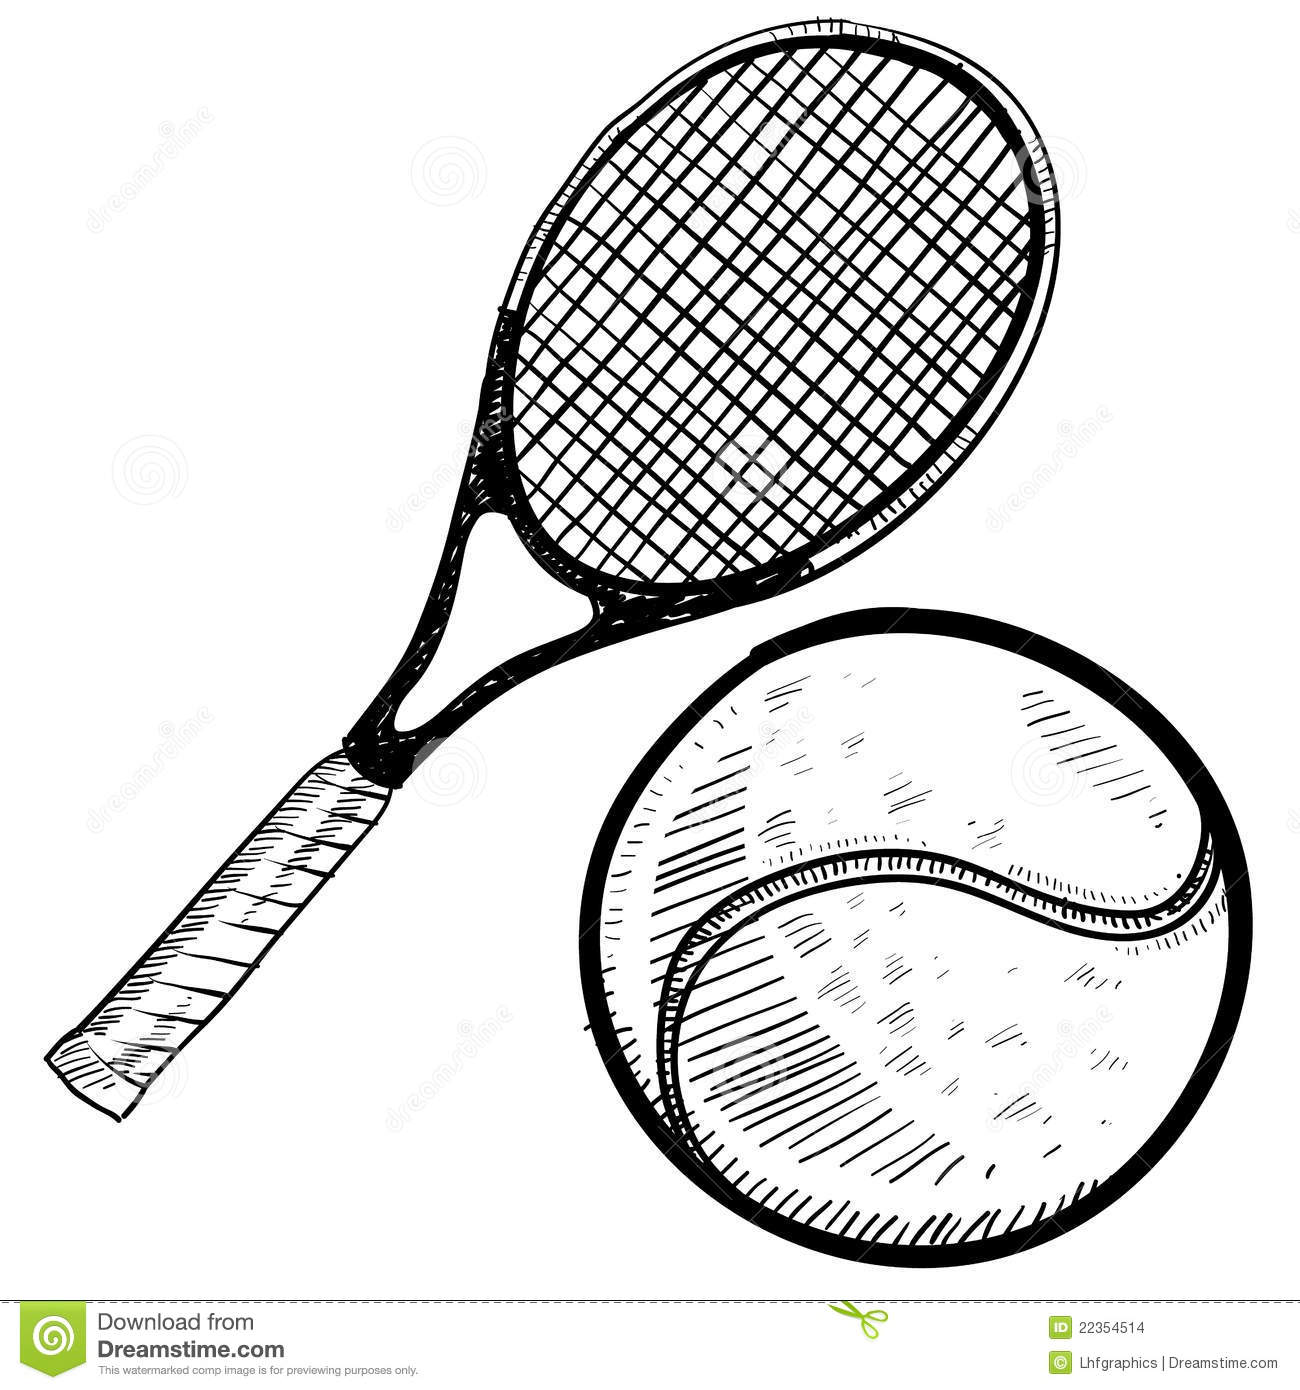 tennis ball and racquet sketch stock images image 22354514 tennis racquet clip art free tennis racket clip art b&w